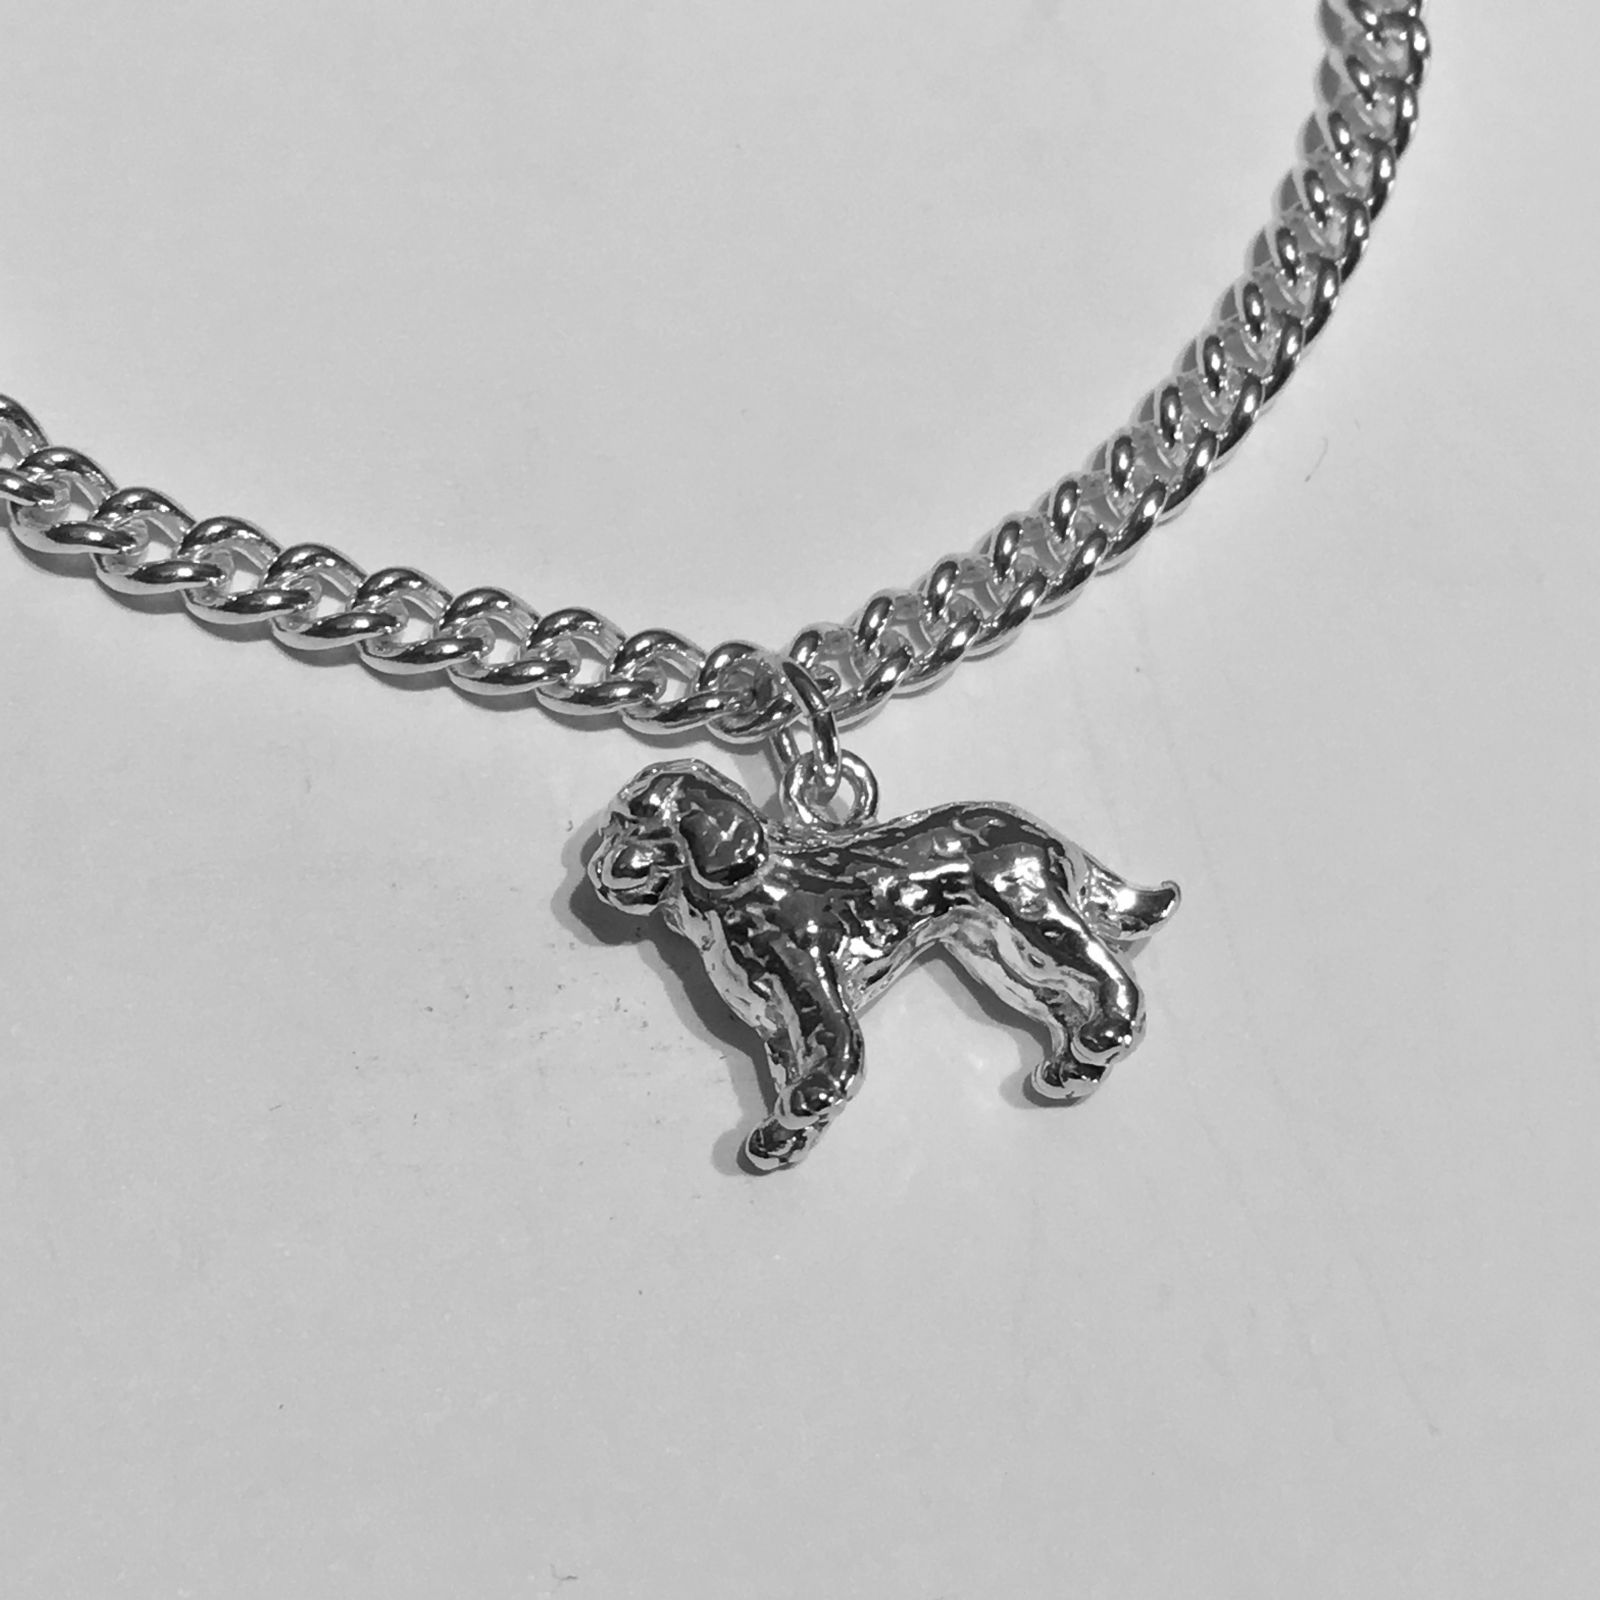 Curb Chain Silver Bracelet with Cockapoo charm